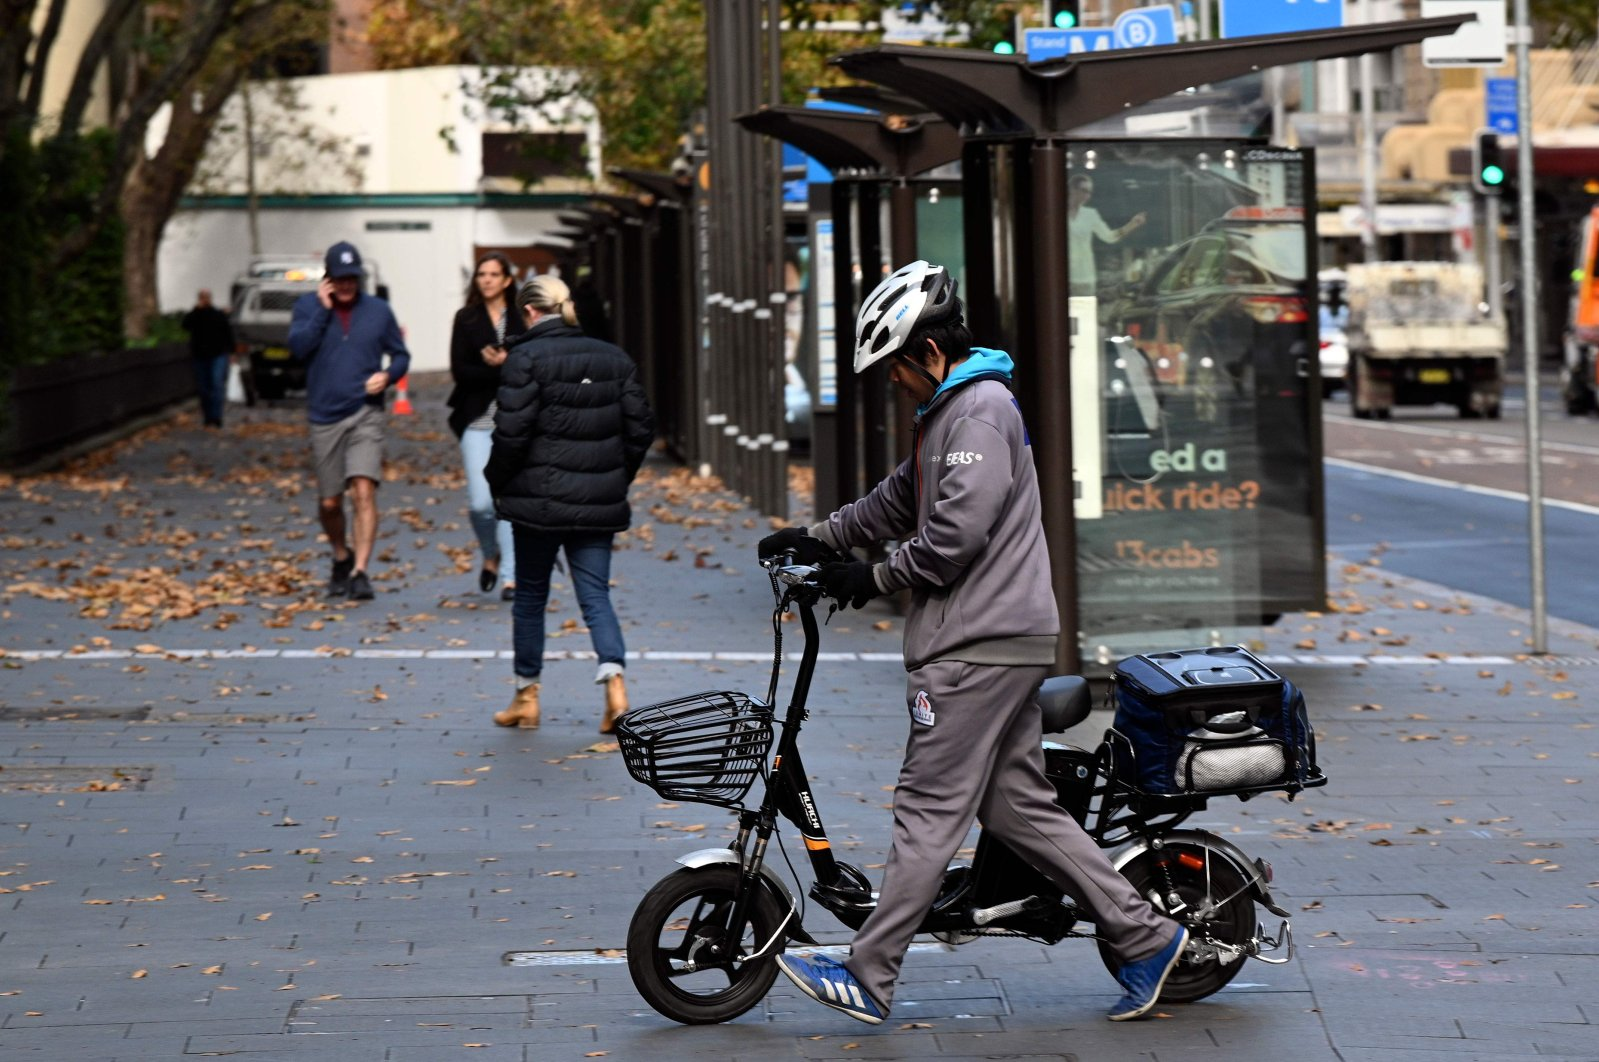 A courier crosses the road to deliver food in the central business district in Sydney, Australia, May 14, 2020. (AFP Photo)